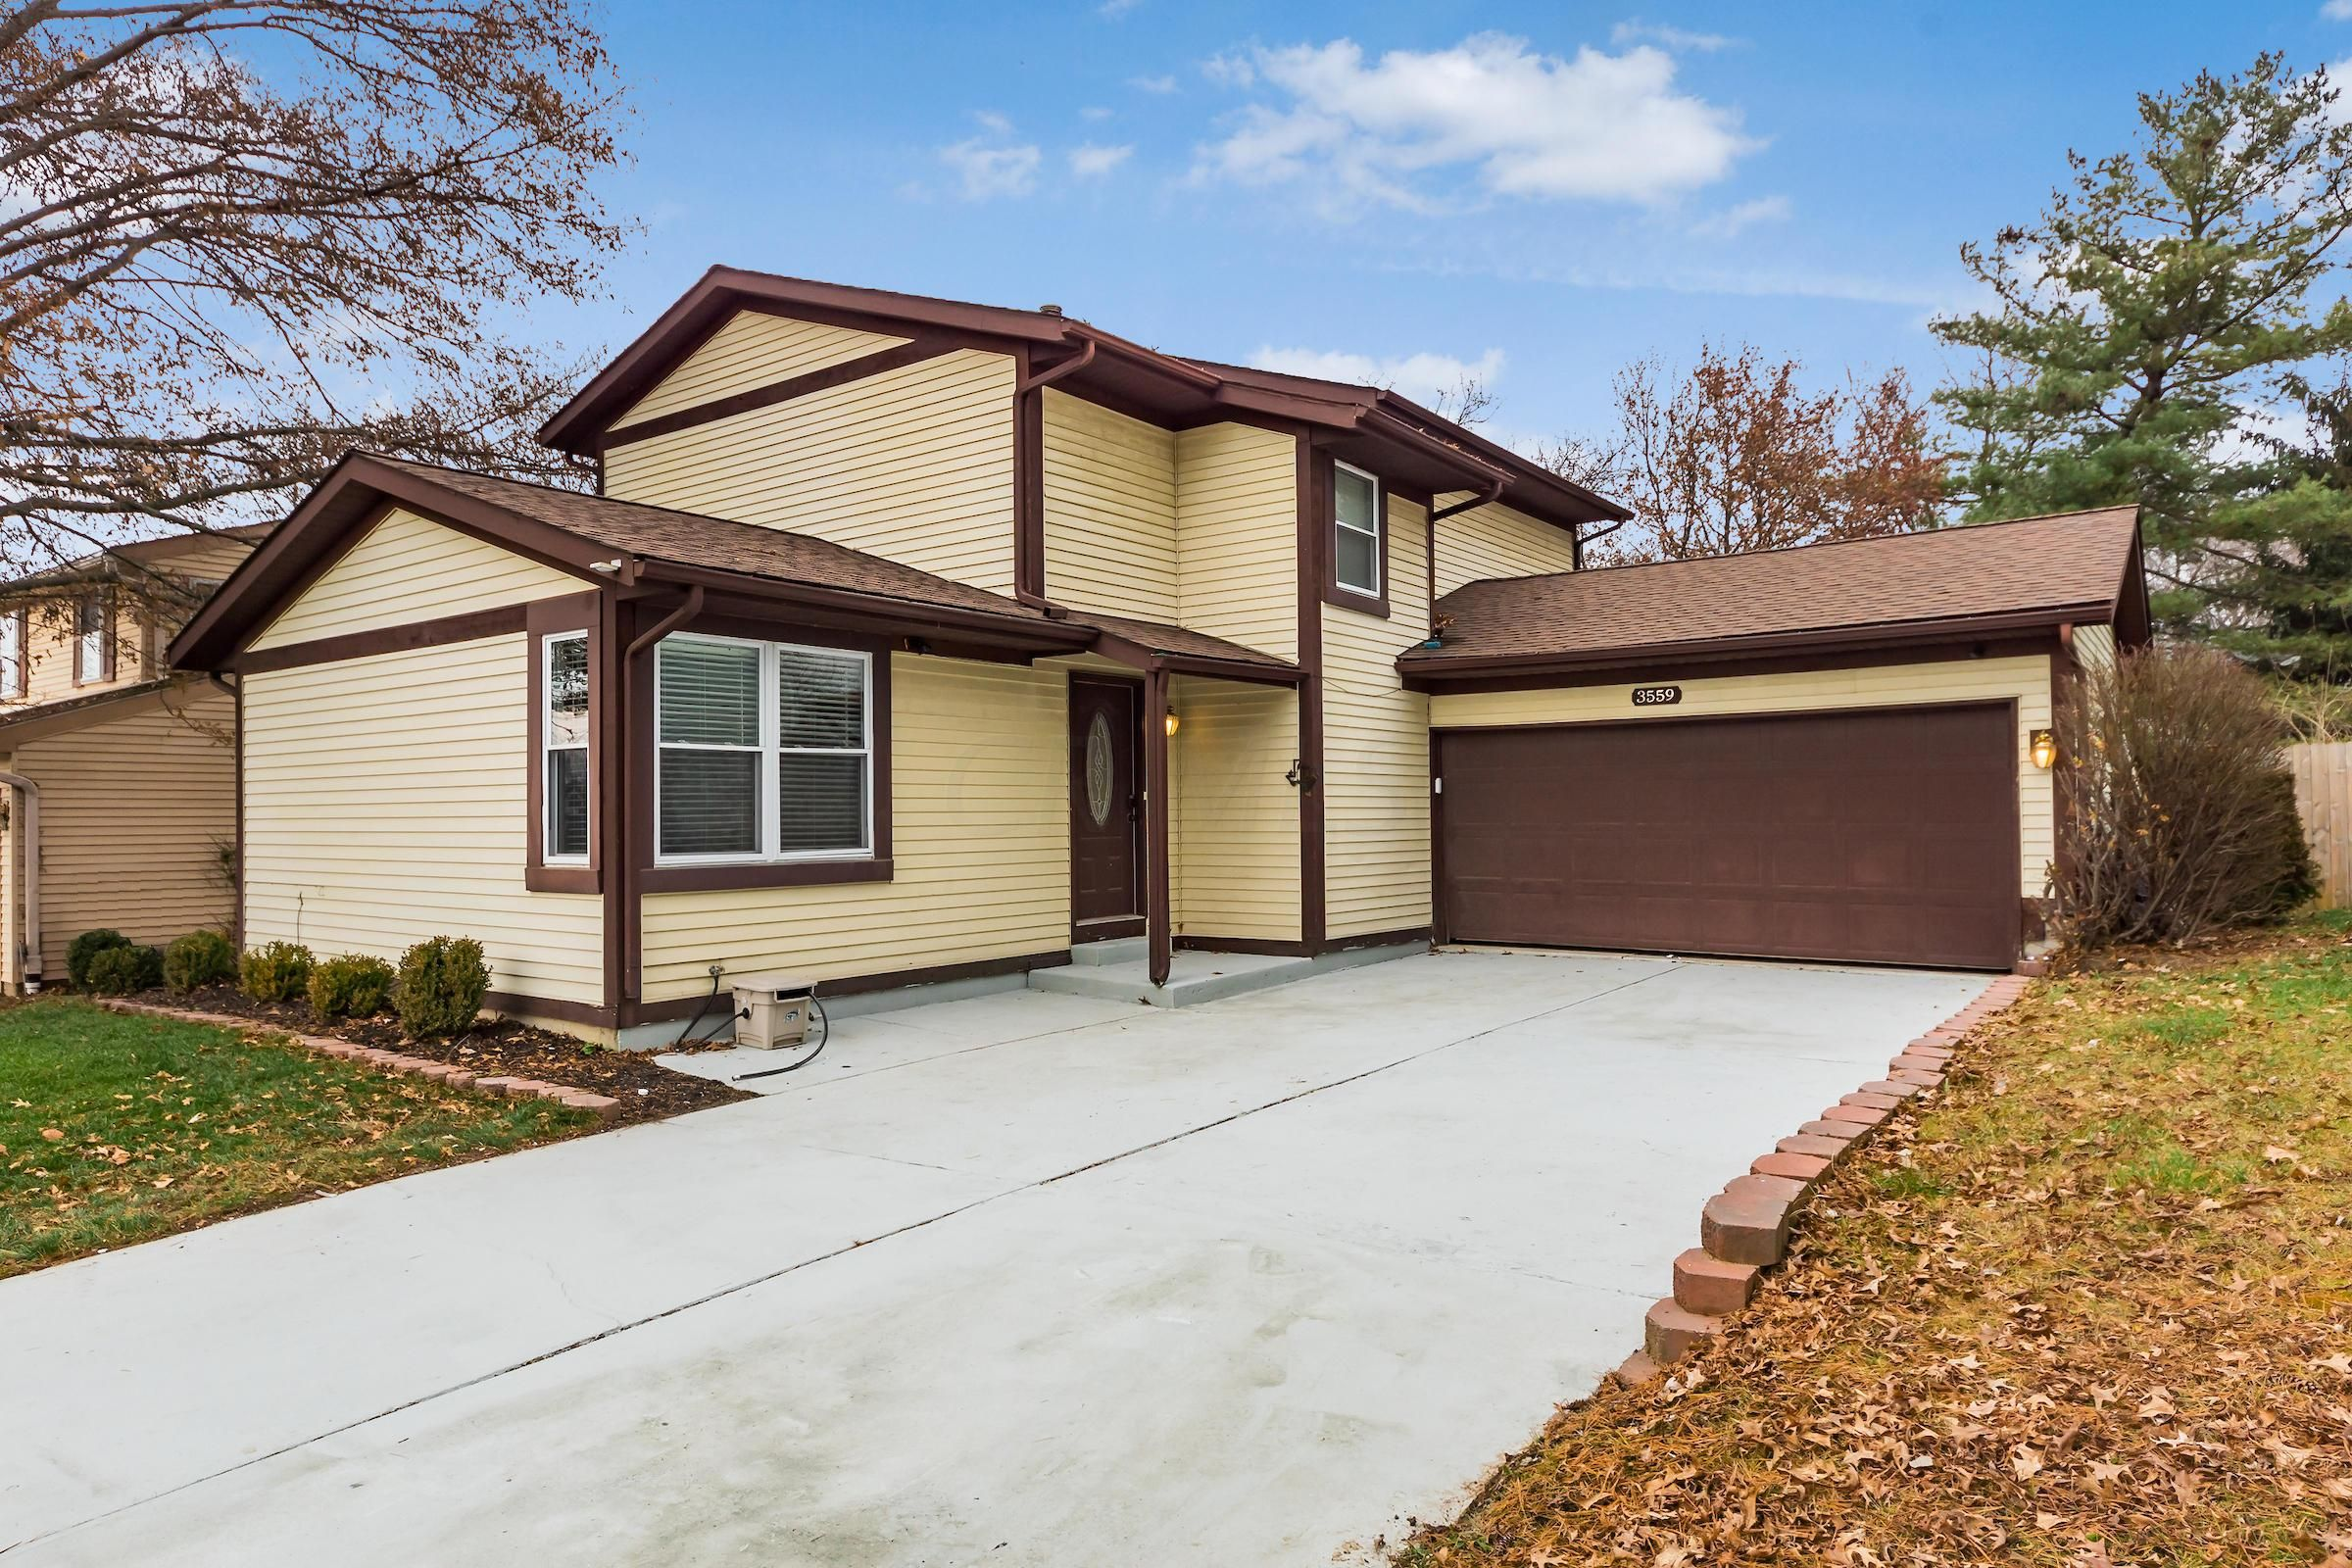 3559 countryview dr canal winchester oh 43110 4 bed 2